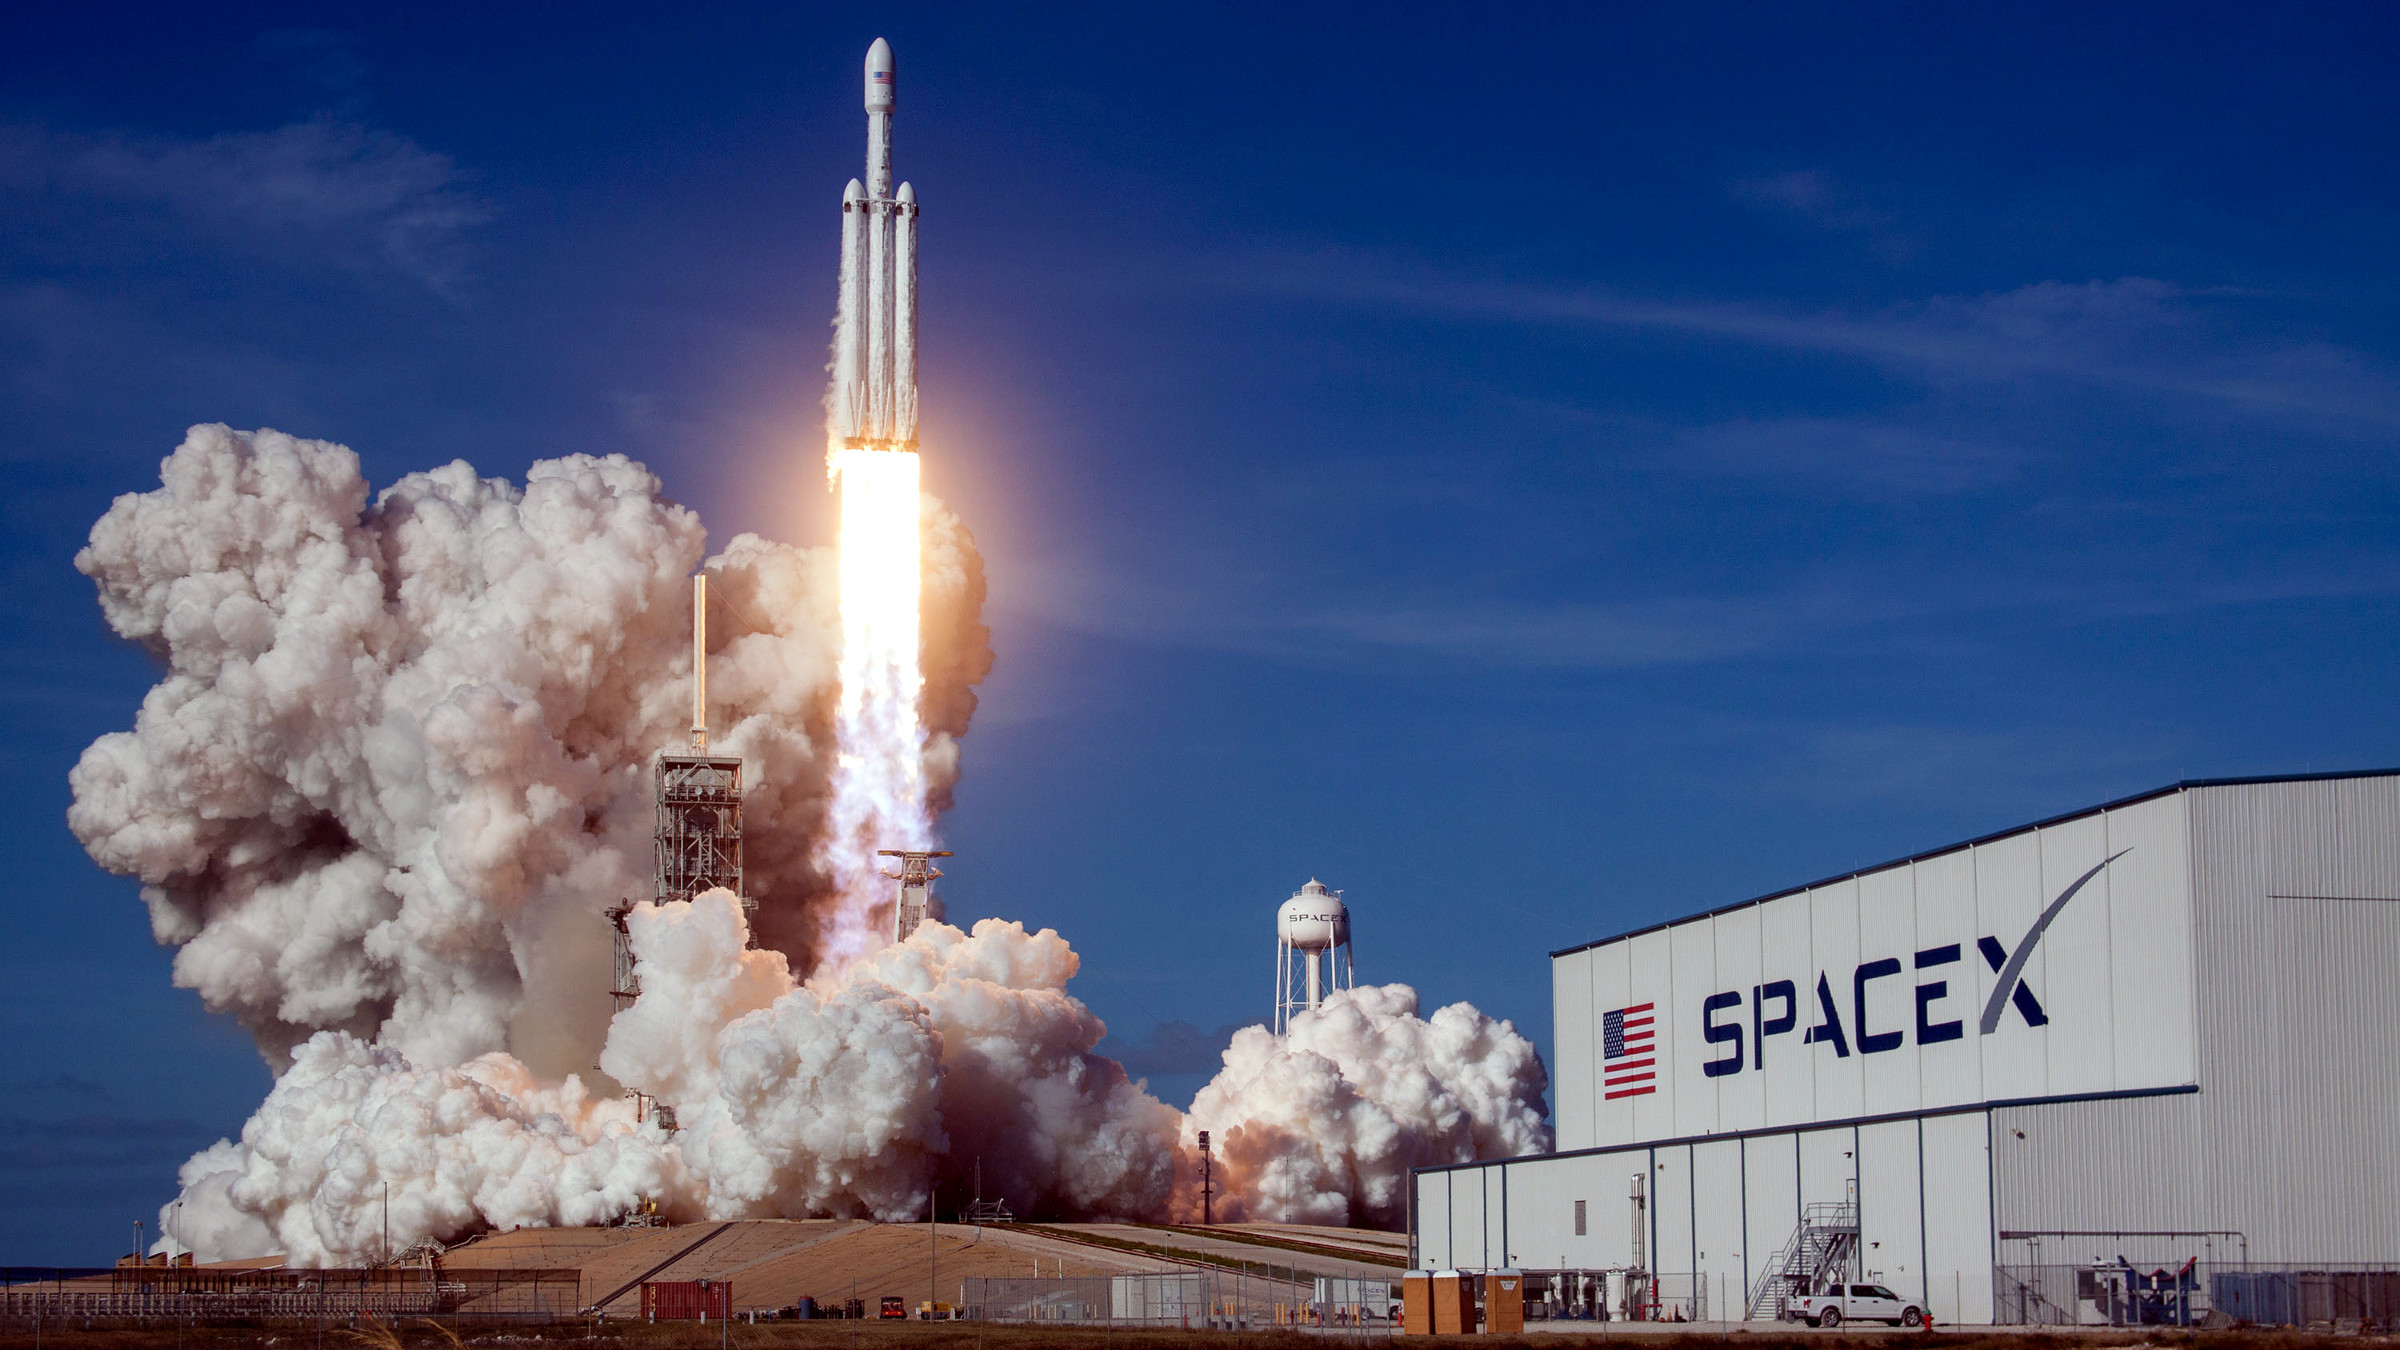 SpaceX's Falcon Heavy rocket is the envy of China and ...